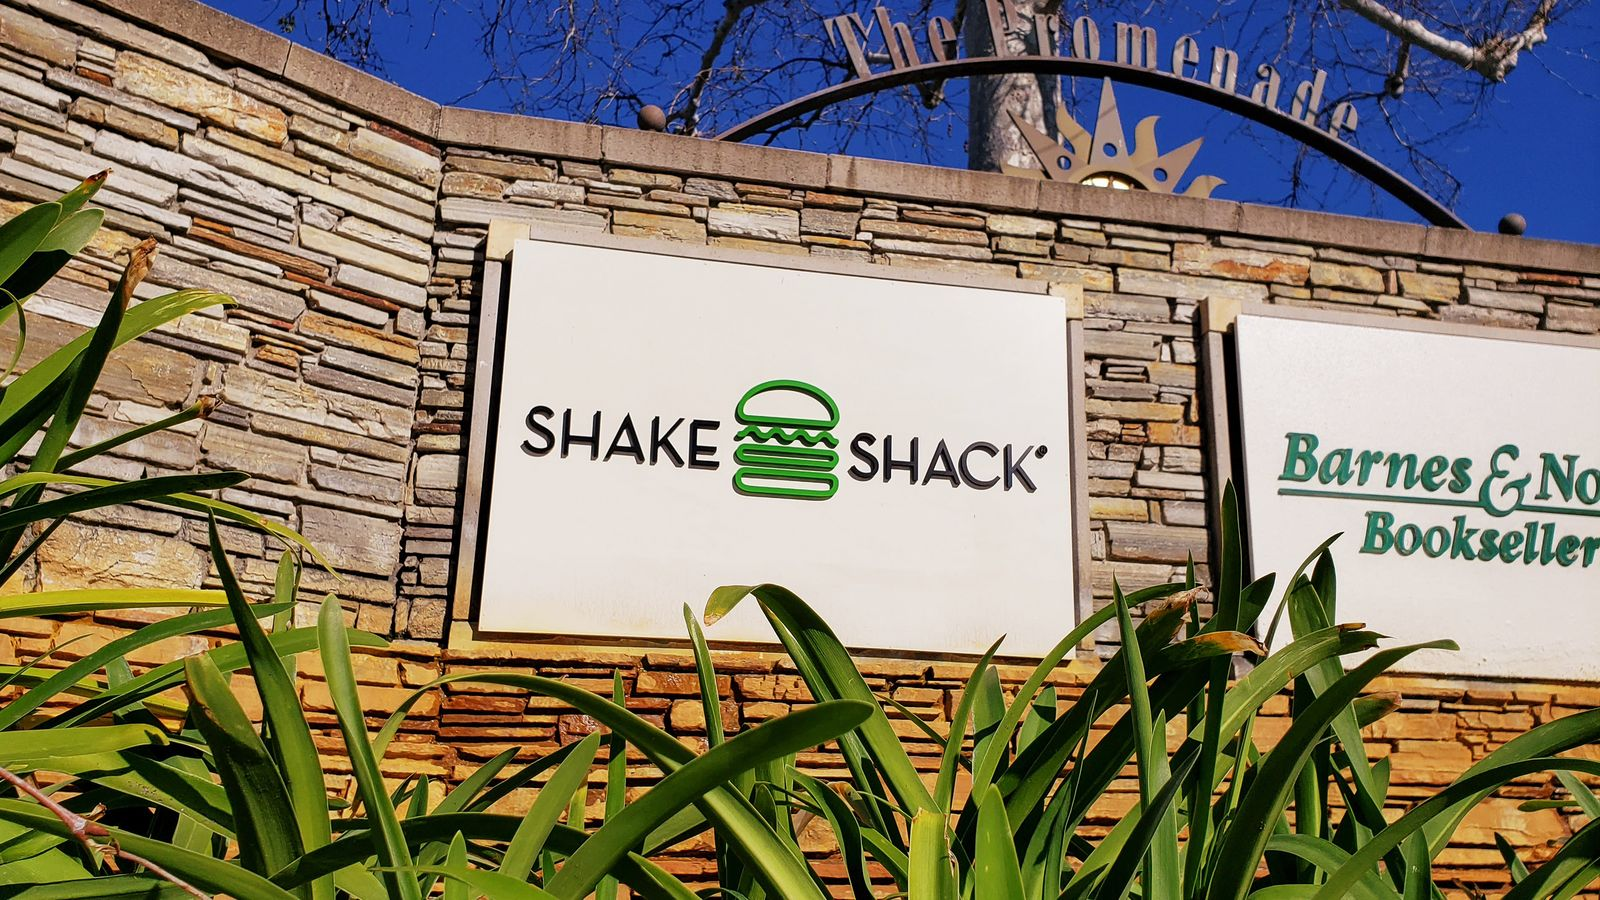 Shake Shack 3d acrylic letters and logo sign in a hamburger shape painted in black and green colors for outdoor branding